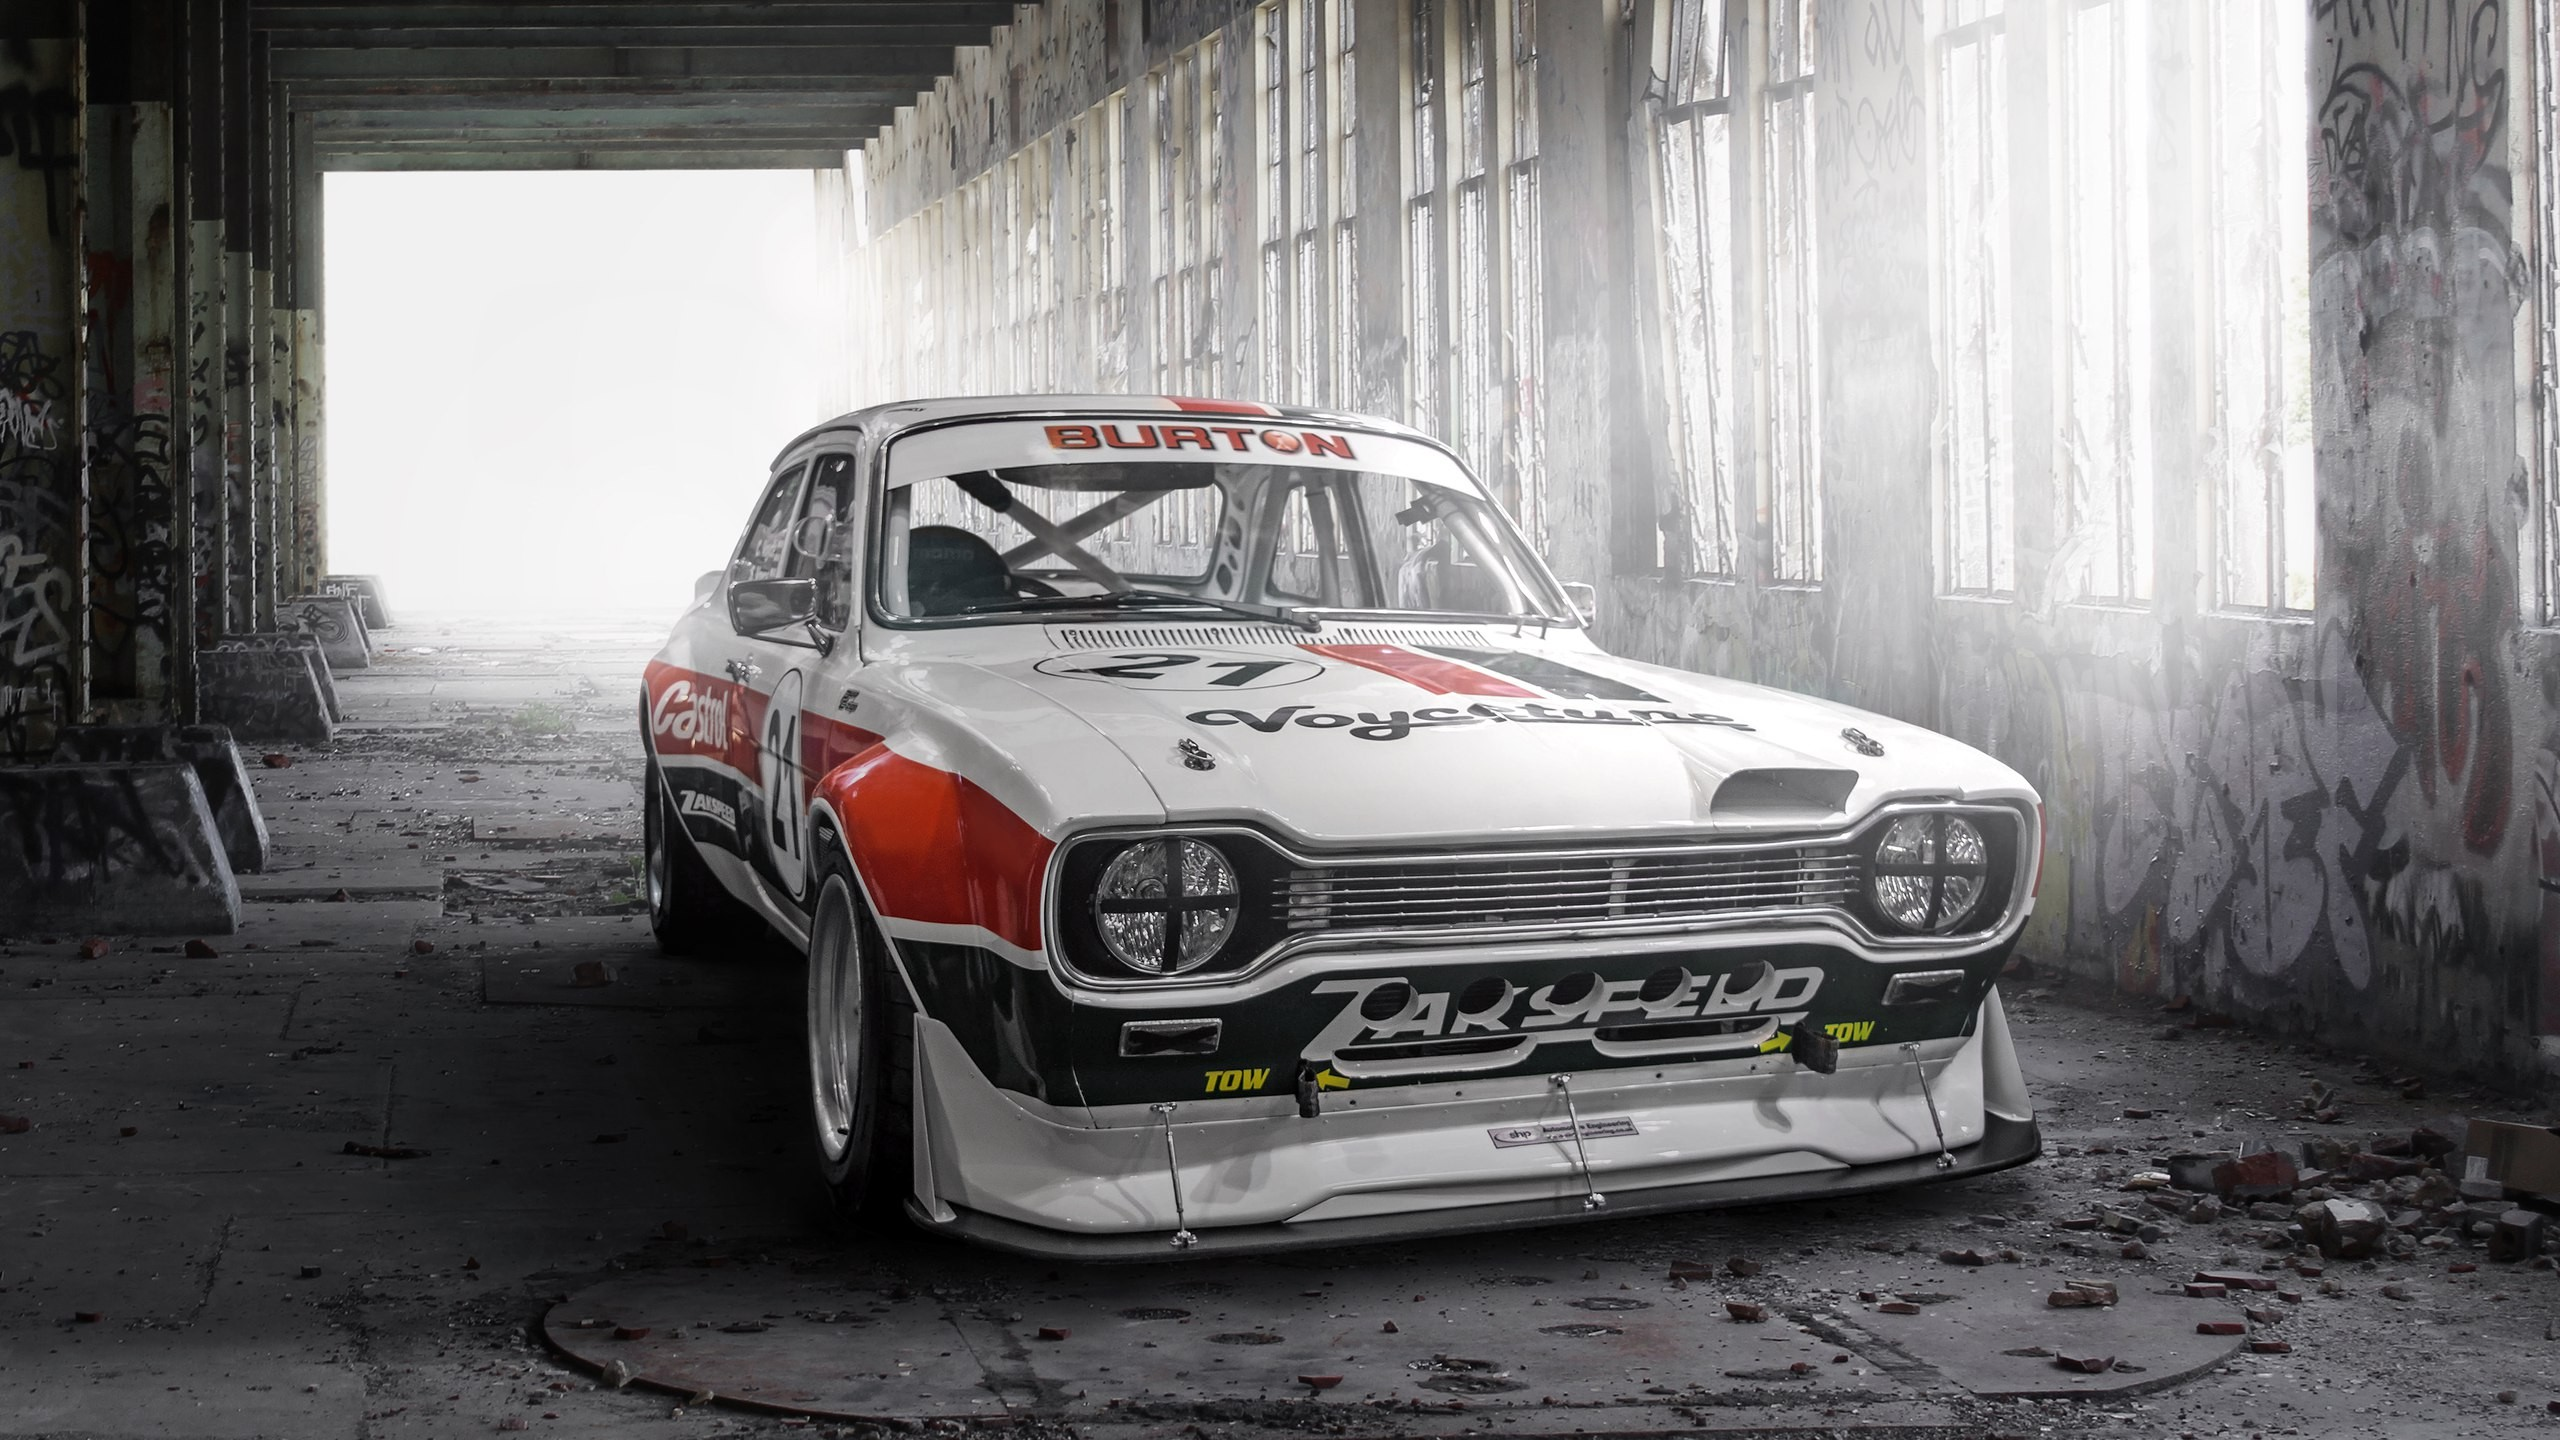 2560x1440 - Ford Escort Wallpapers 18